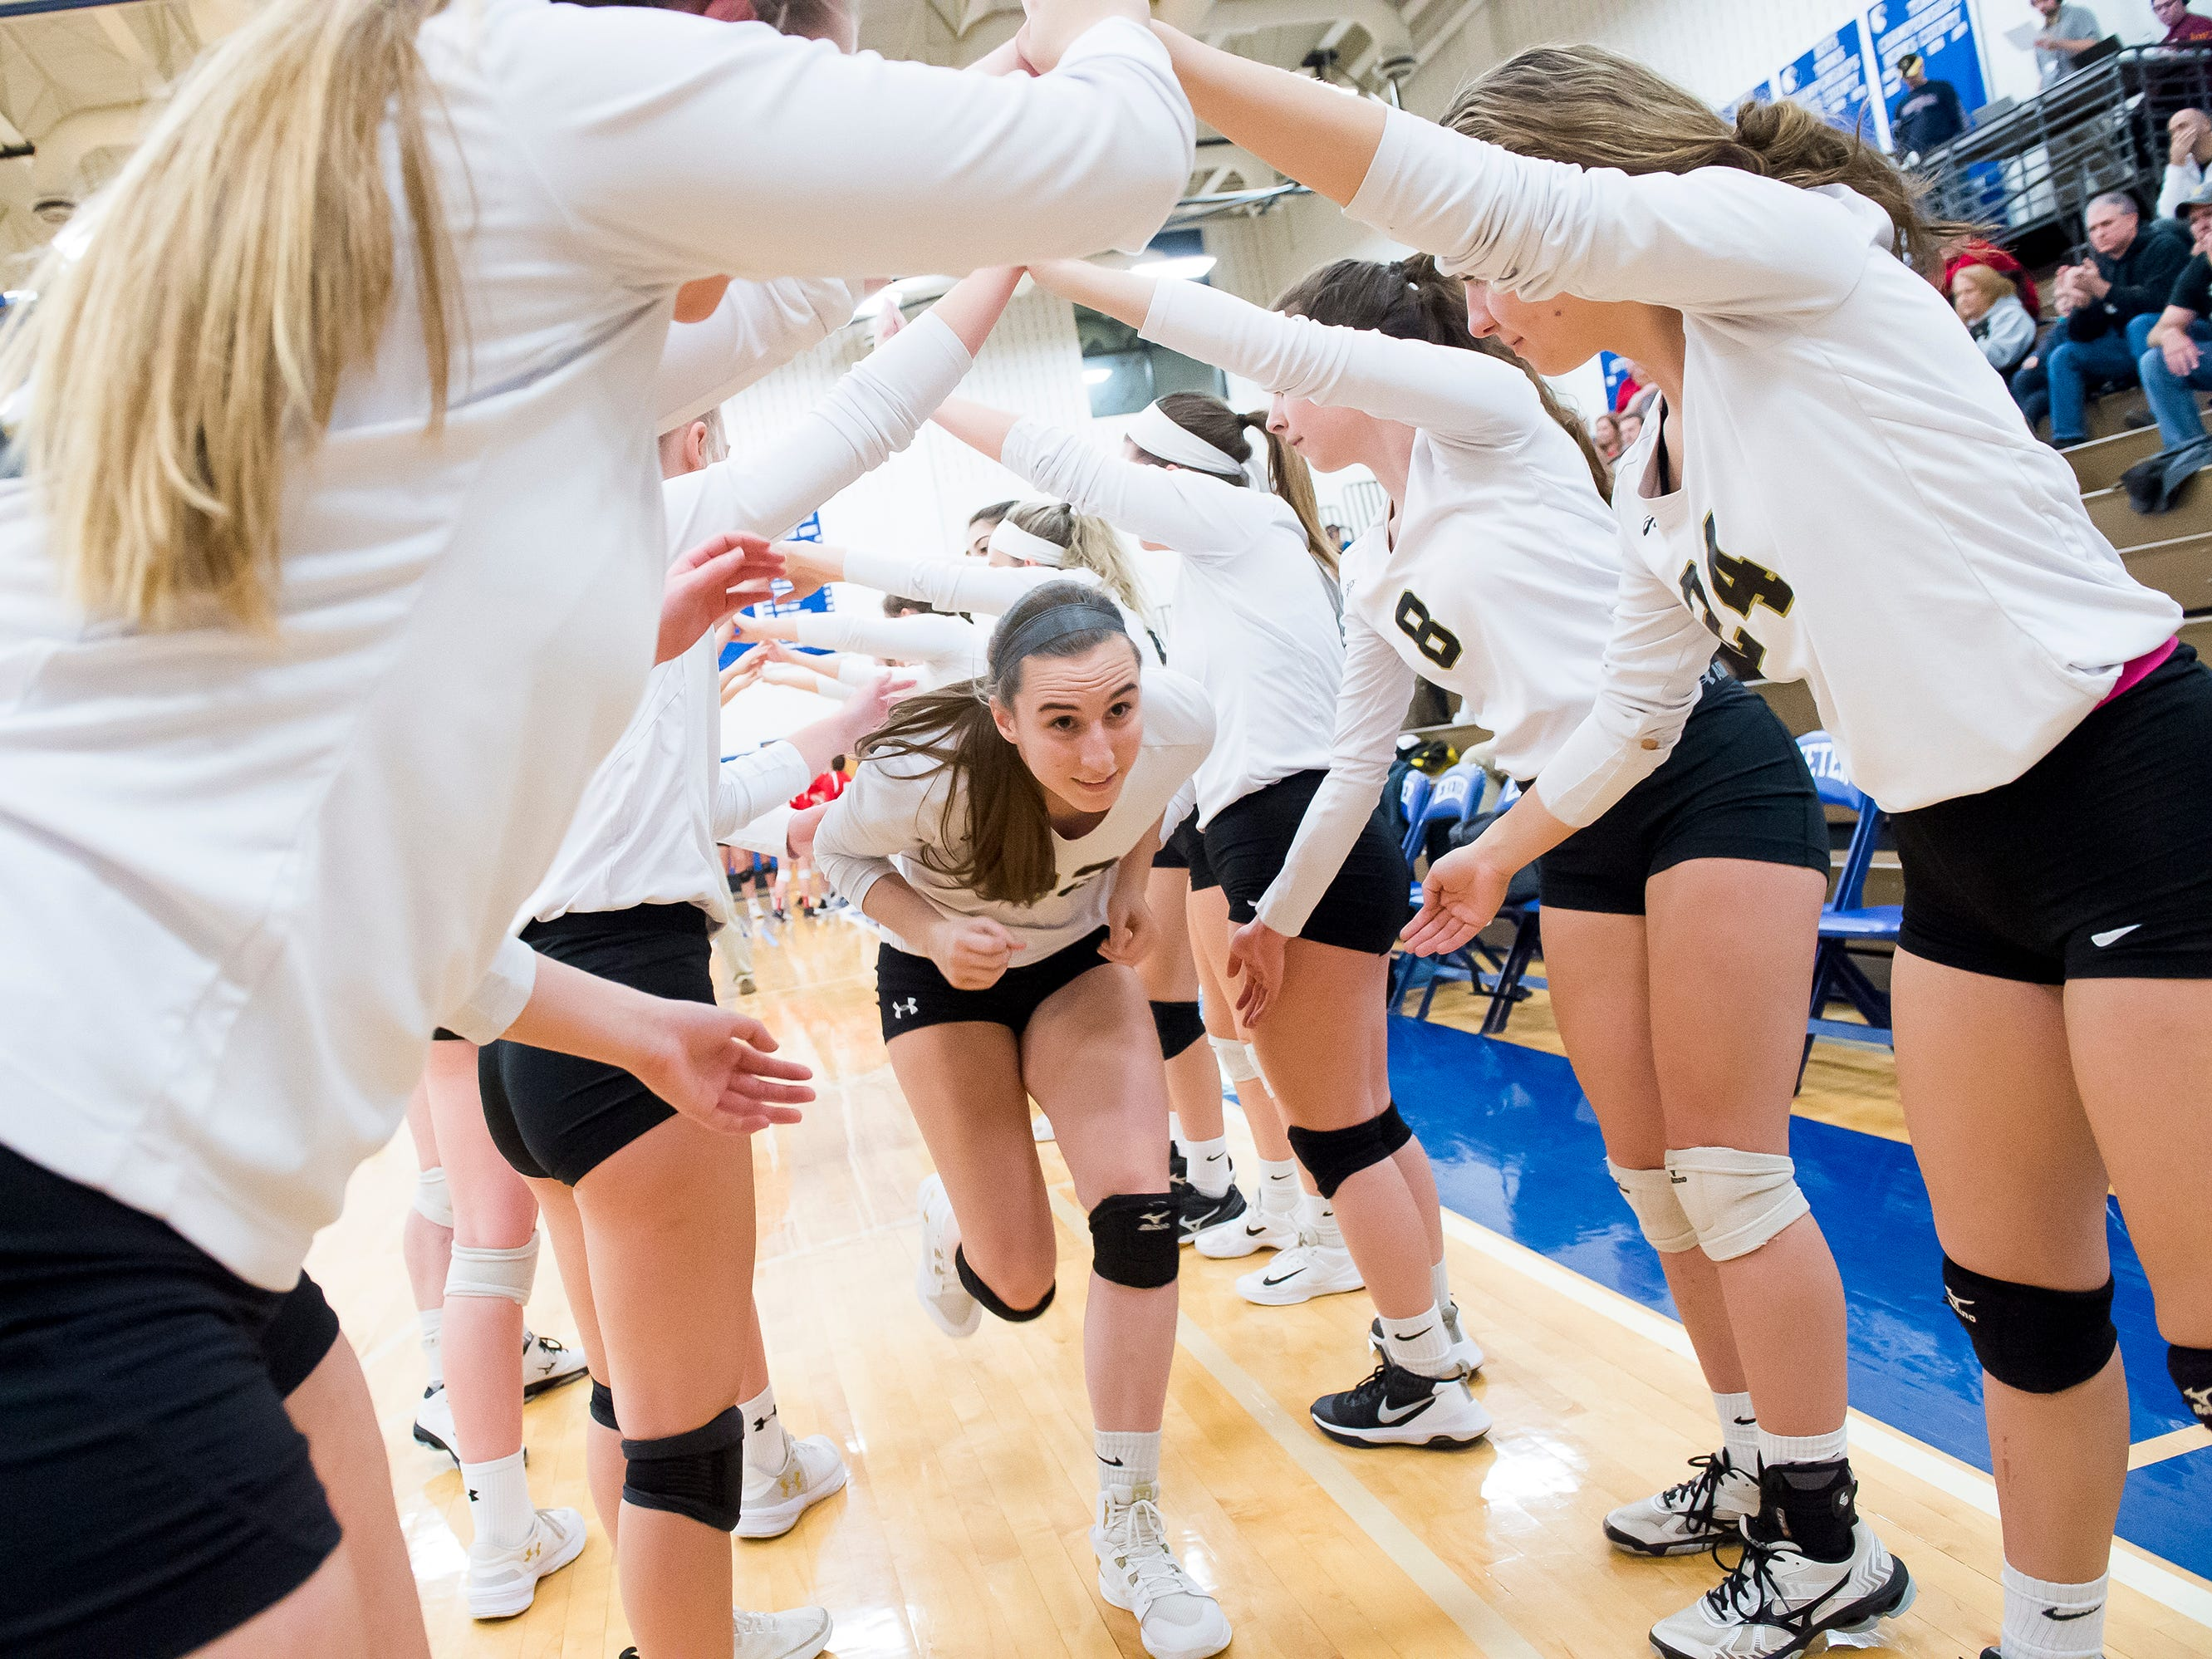 Delone Catholic's Emily Miller is introduced in the starting lineup during a PIAA 2A semifinal game against Holy Redeemer at Exeter Township High School in Reading on Tuesday, November 13, 2018. The Squires fell in five sets; 23-25, 25-13, 25-13, 18-25, 15-10.